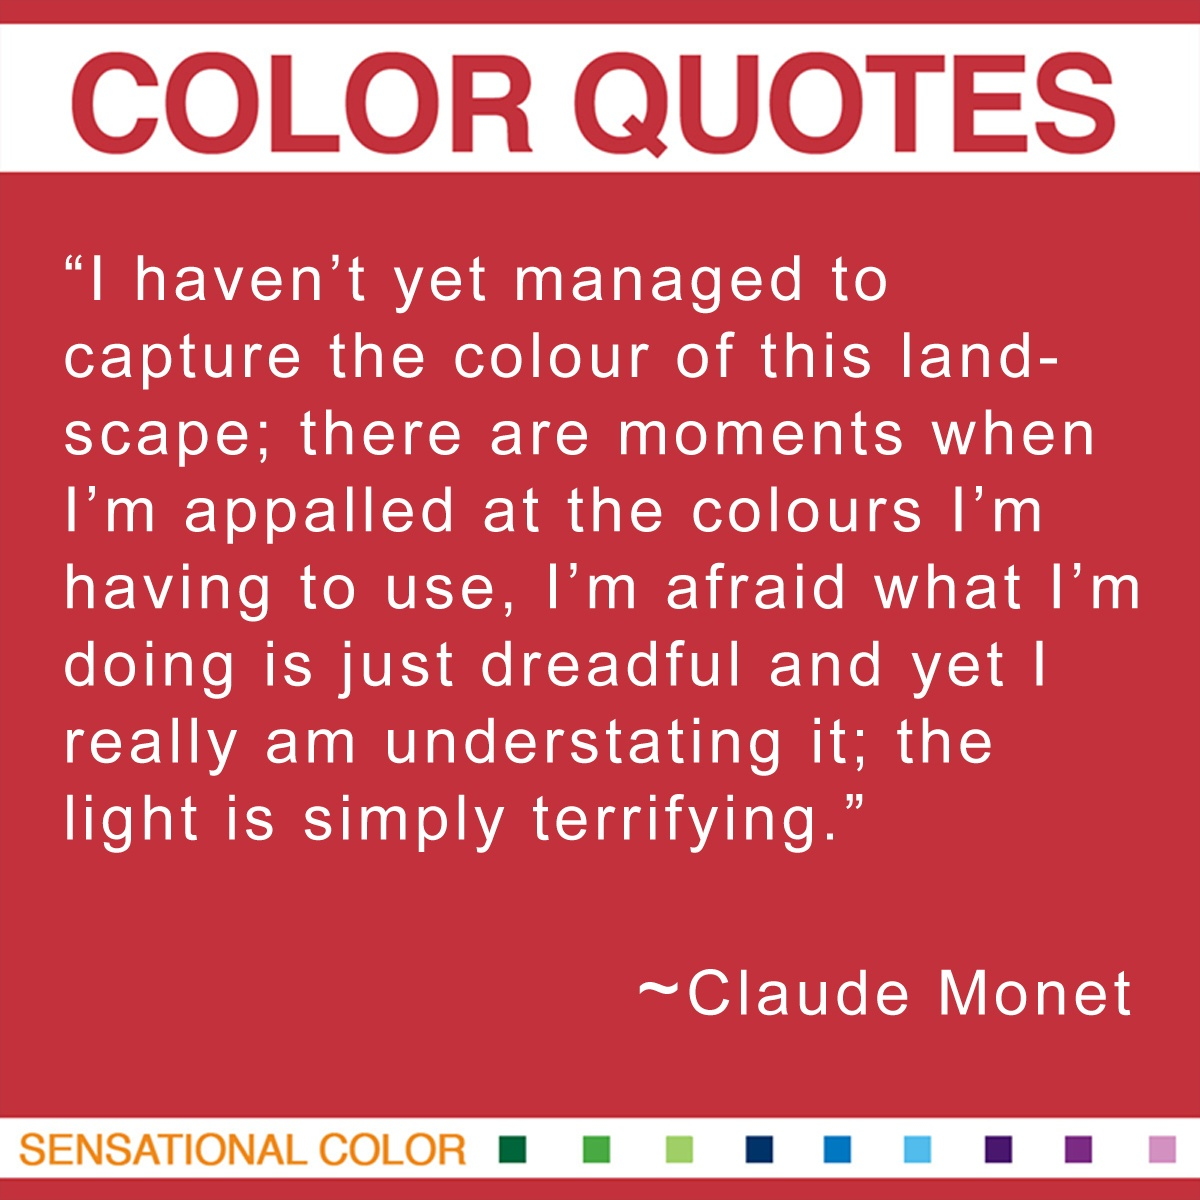 """I haven't yet managed to capture the color of this landscape; there are moments when I'm appalled at the colors I'm having to use, I'm afraid what I'm doing is just dreadful and yet I really am understating it; the light is simply terrifying."" - Claude Monet"